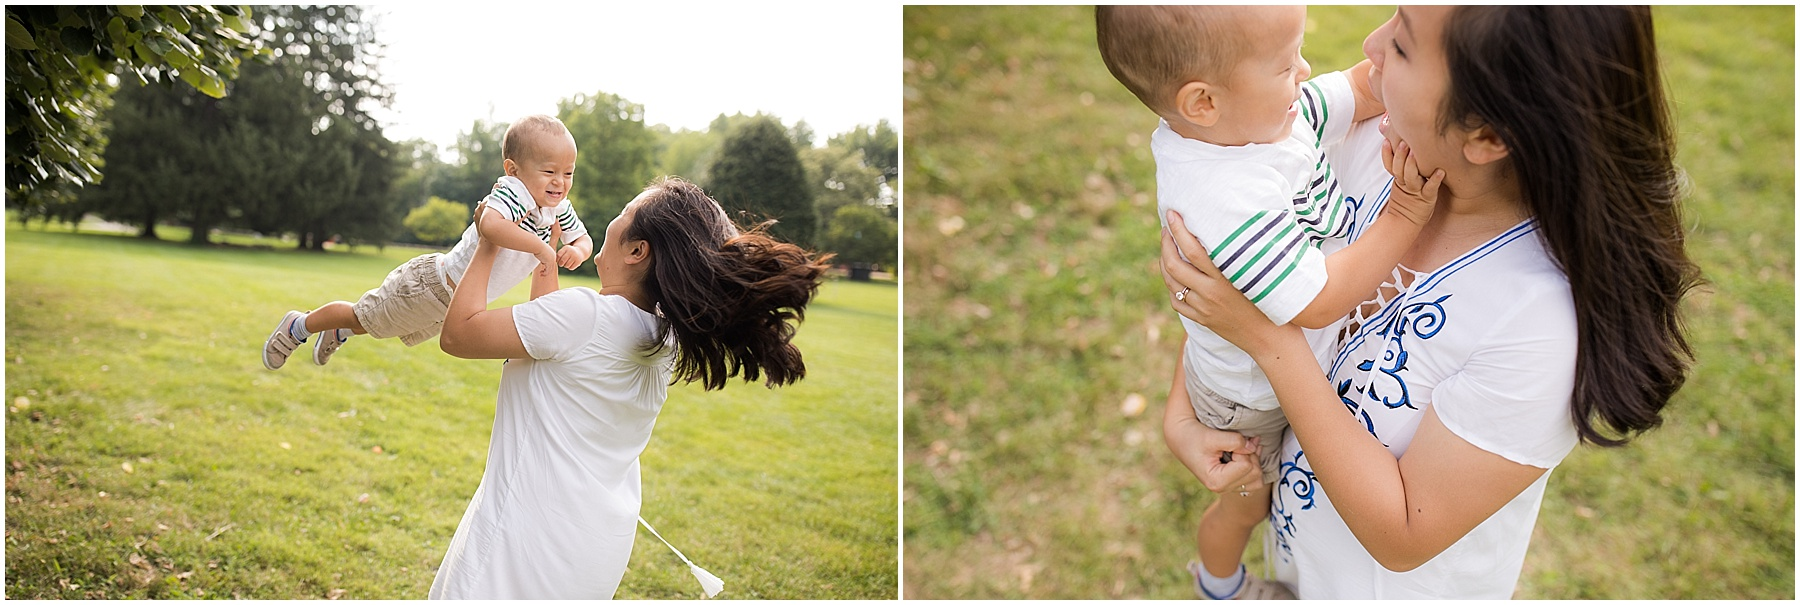 Mother playing with her son.  Indianapolis Family Photography, Raindancer Studios